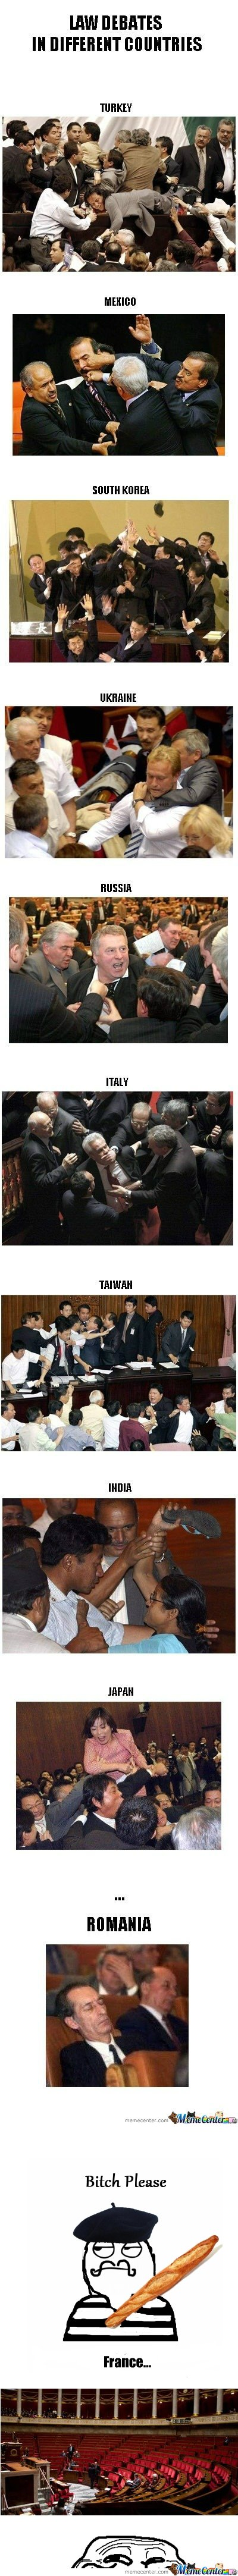 Law debates in different countries... And France